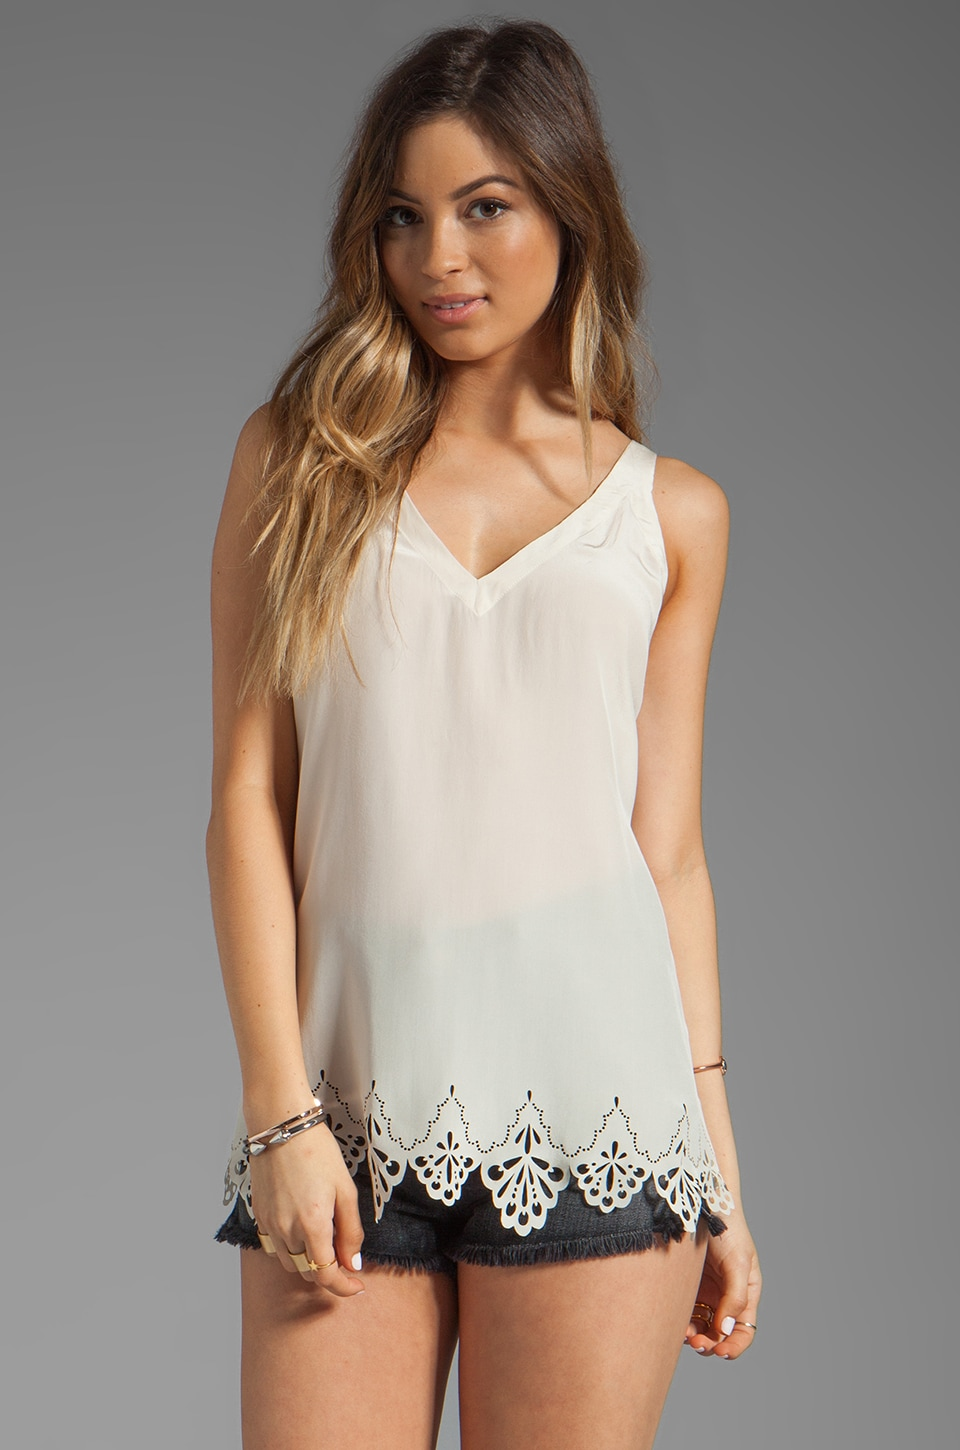 Gypsy 05 Punta Cana Laser Cut Silk Cami in Moonbeam